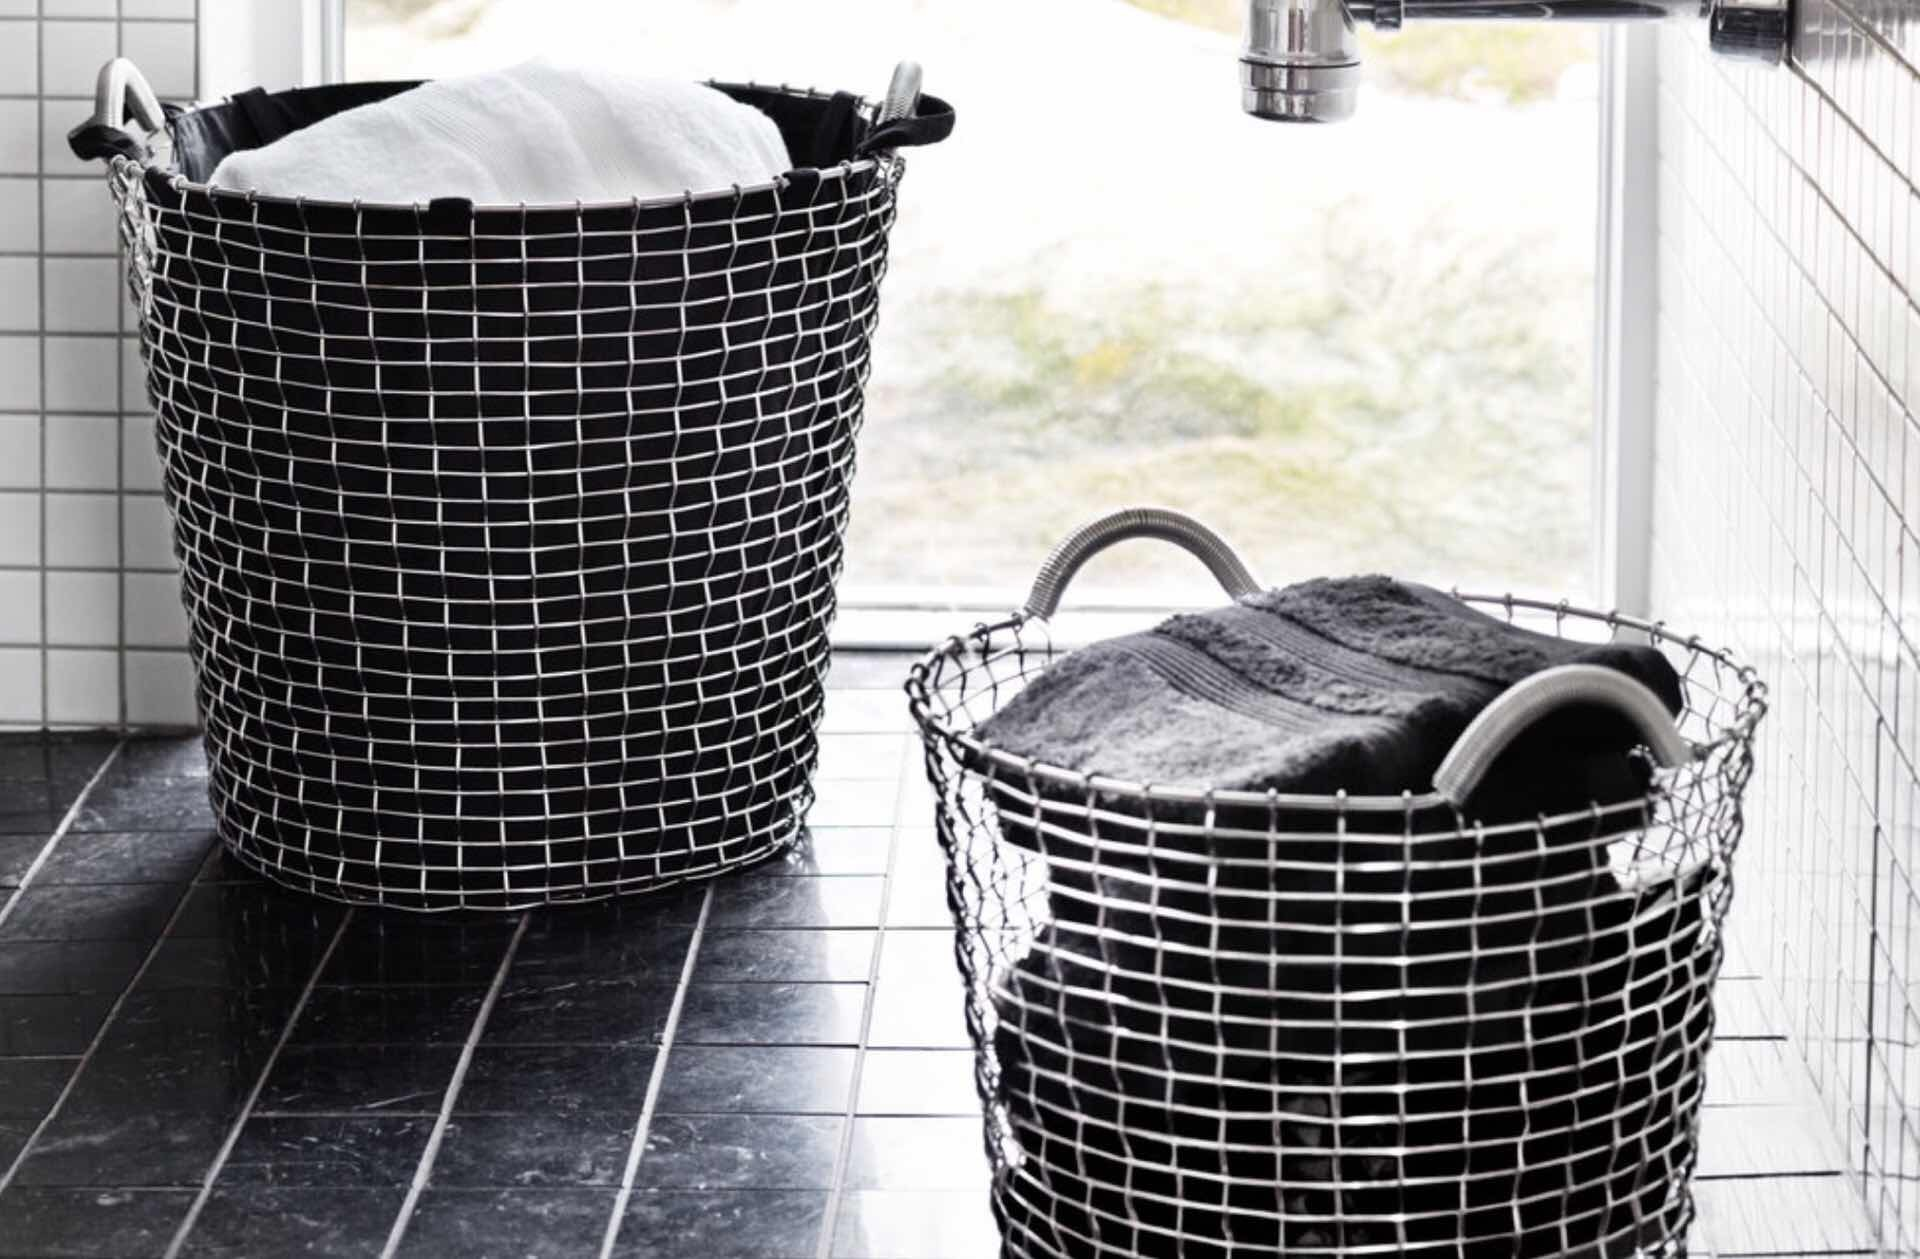 Korbo's handwoven steel wire baskets. (€99–€290 / ~$110–$322 USD, depending on size and material)